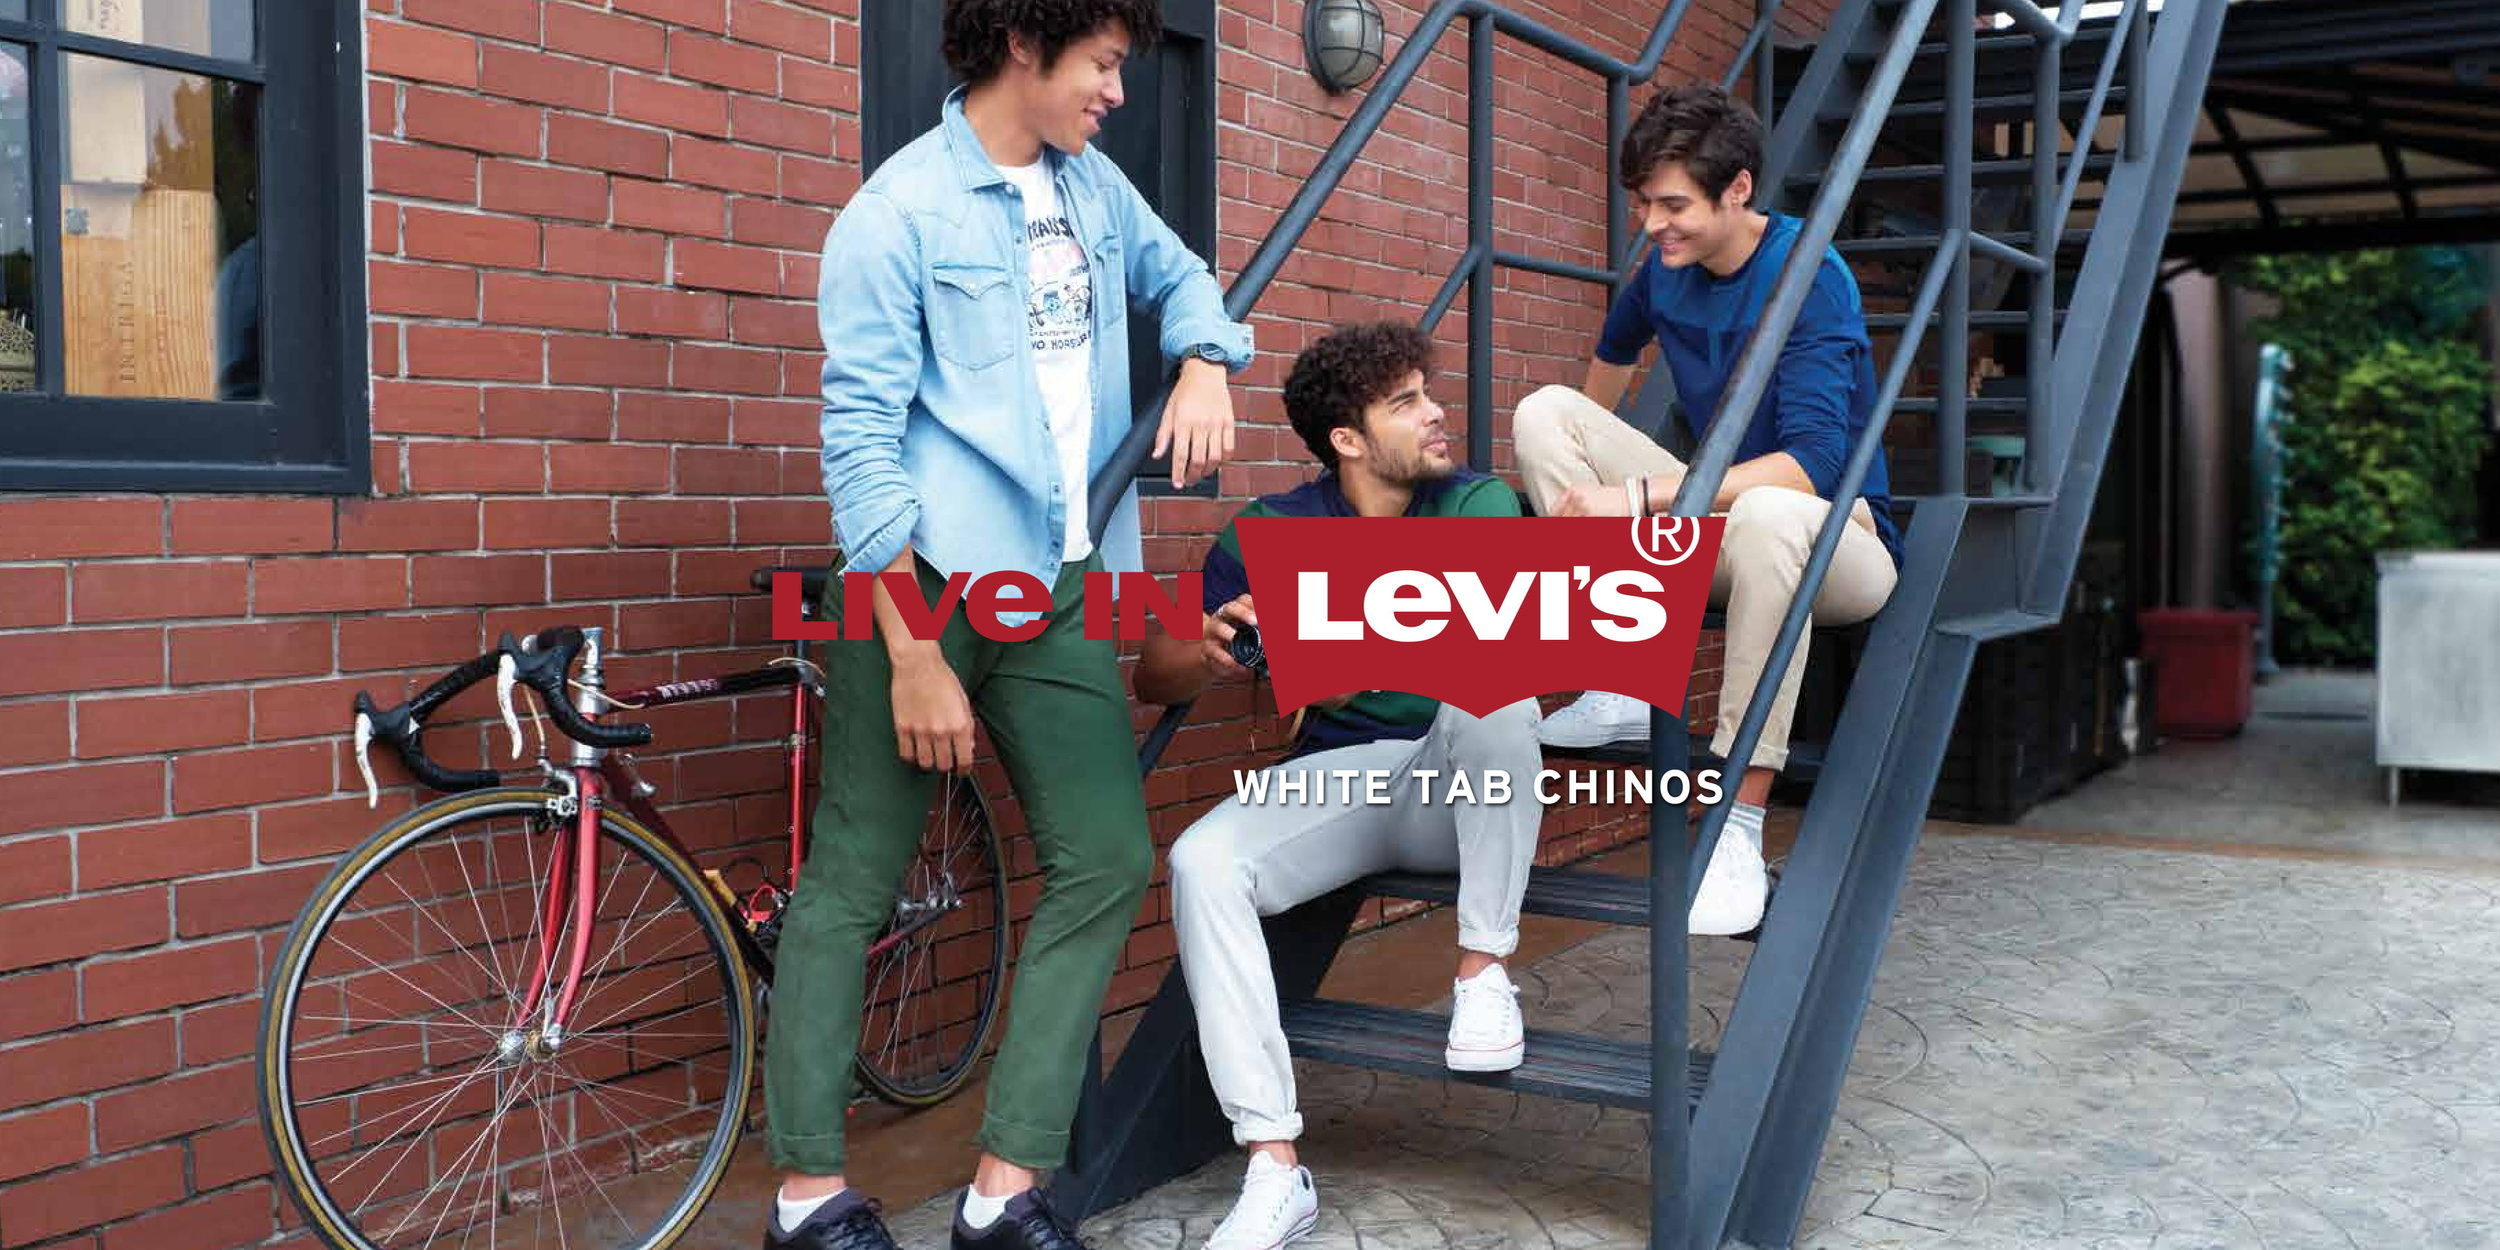 Levis+White+Tab+Print+and+Outdoor+Adapts-06.jpg